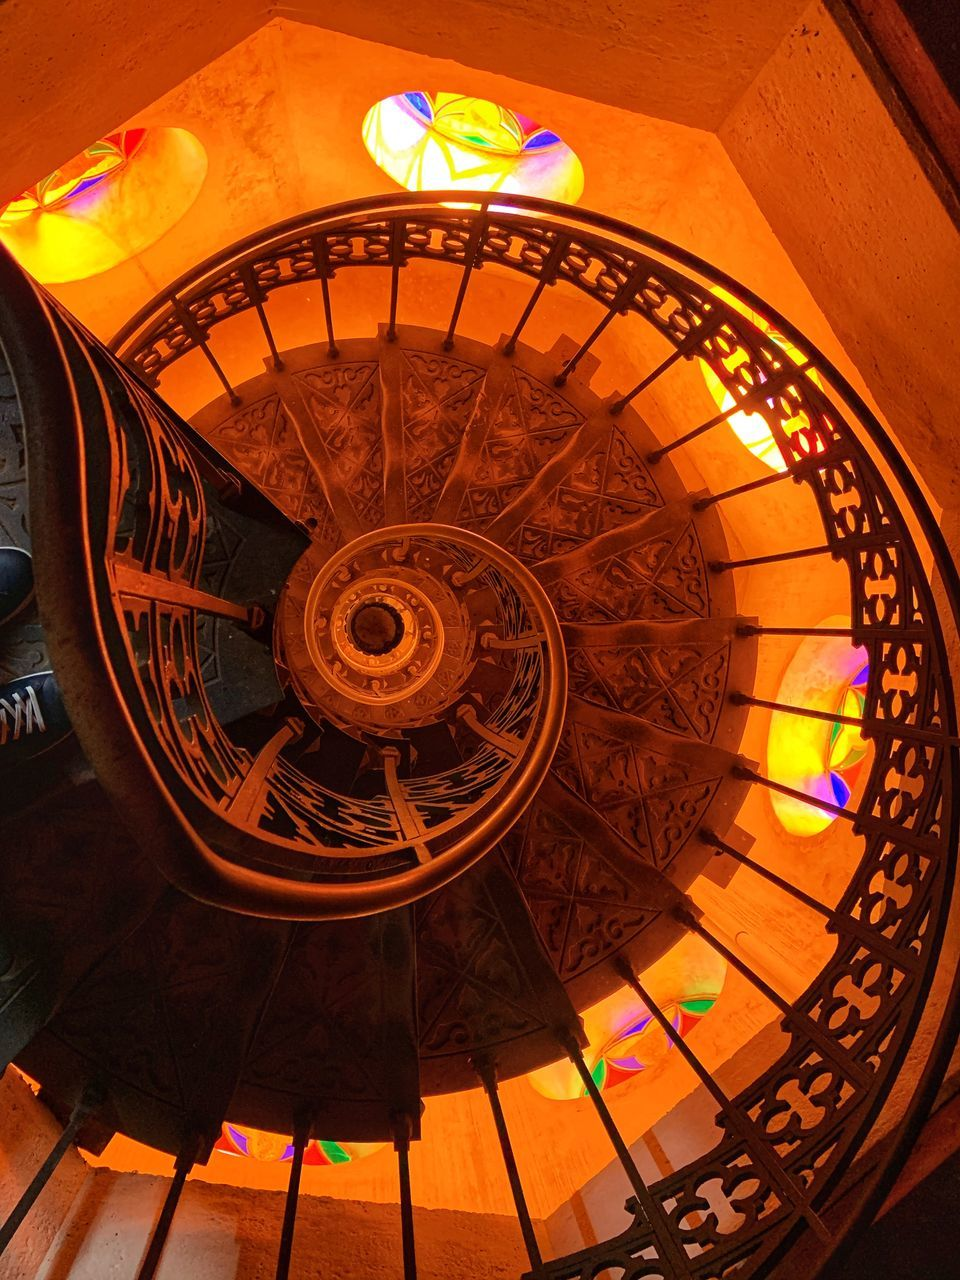 architecture, indoors, built structure, railing, steps and staircases, staircase, spiral, illuminated, no people, spiral staircase, pattern, low angle view, design, ceiling, arts culture and entertainment, lighting equipment, shape, directly below, day, ornate